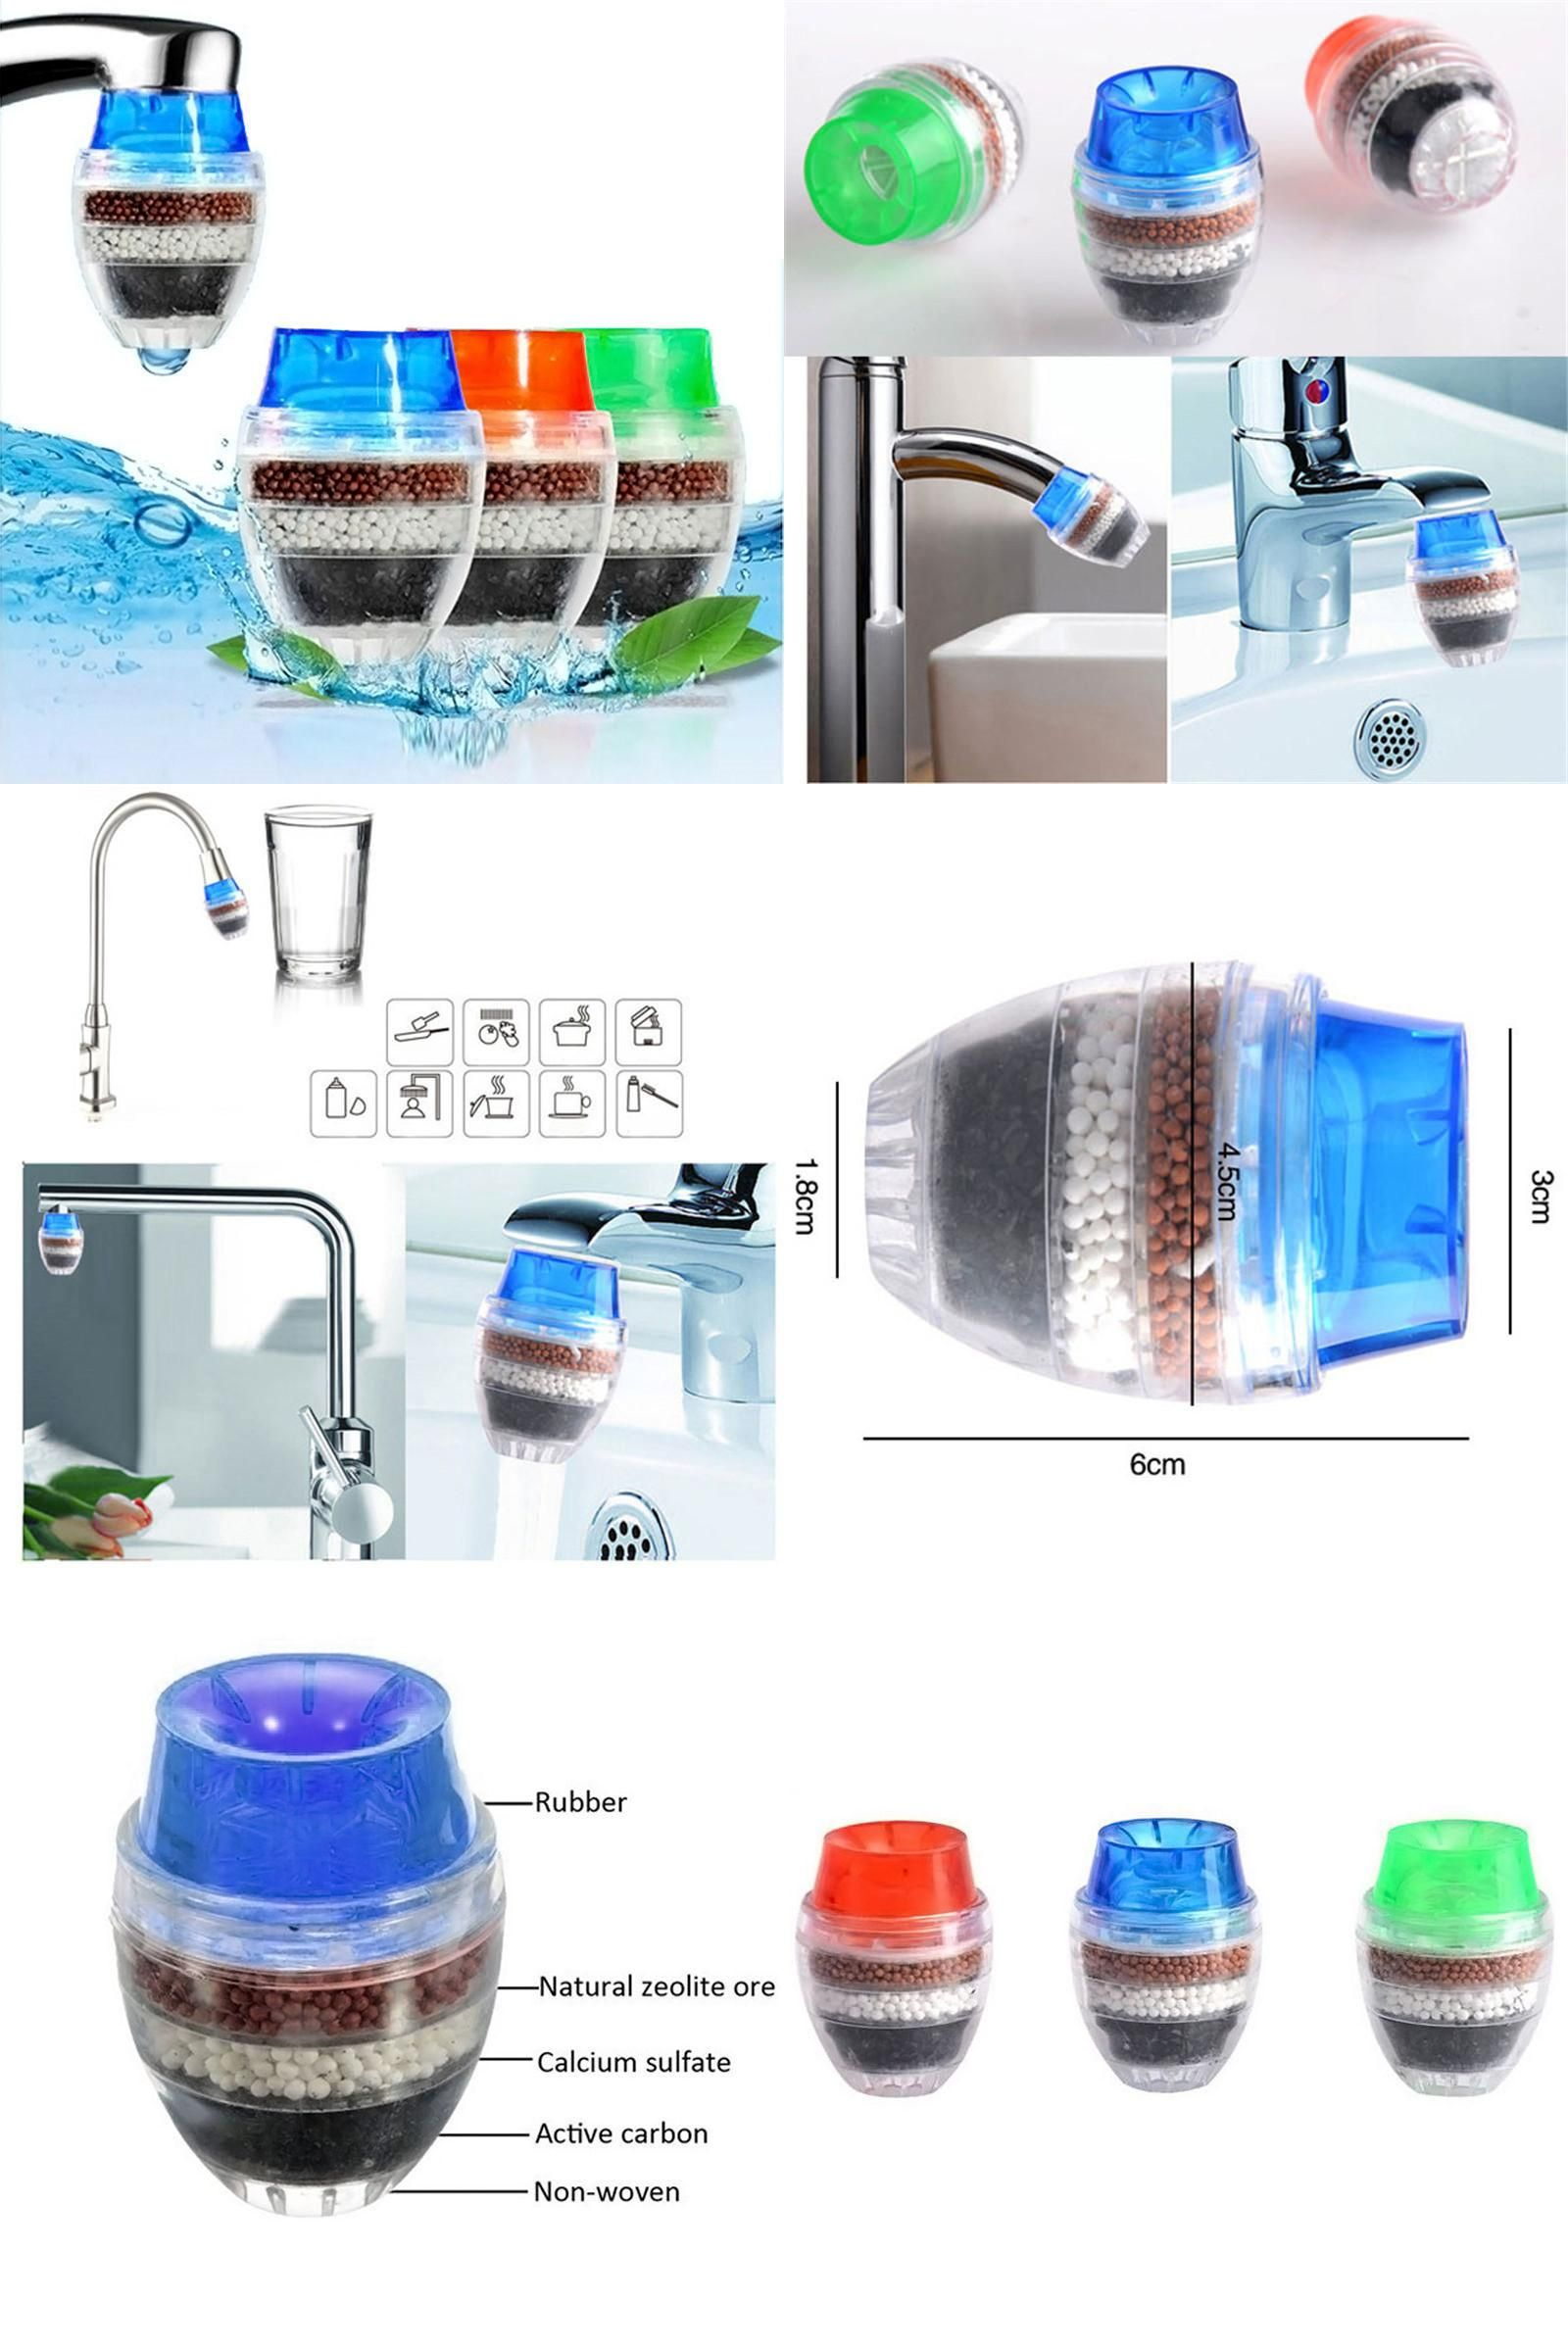 Visit To Buy 1 Pc Coconut Carbon Home Household Kitchen Mini Faucet Tap Water Filter Clean Purifier Filter Filtrati Faucet Cheap Kitchen Faucets Mini Kitchen